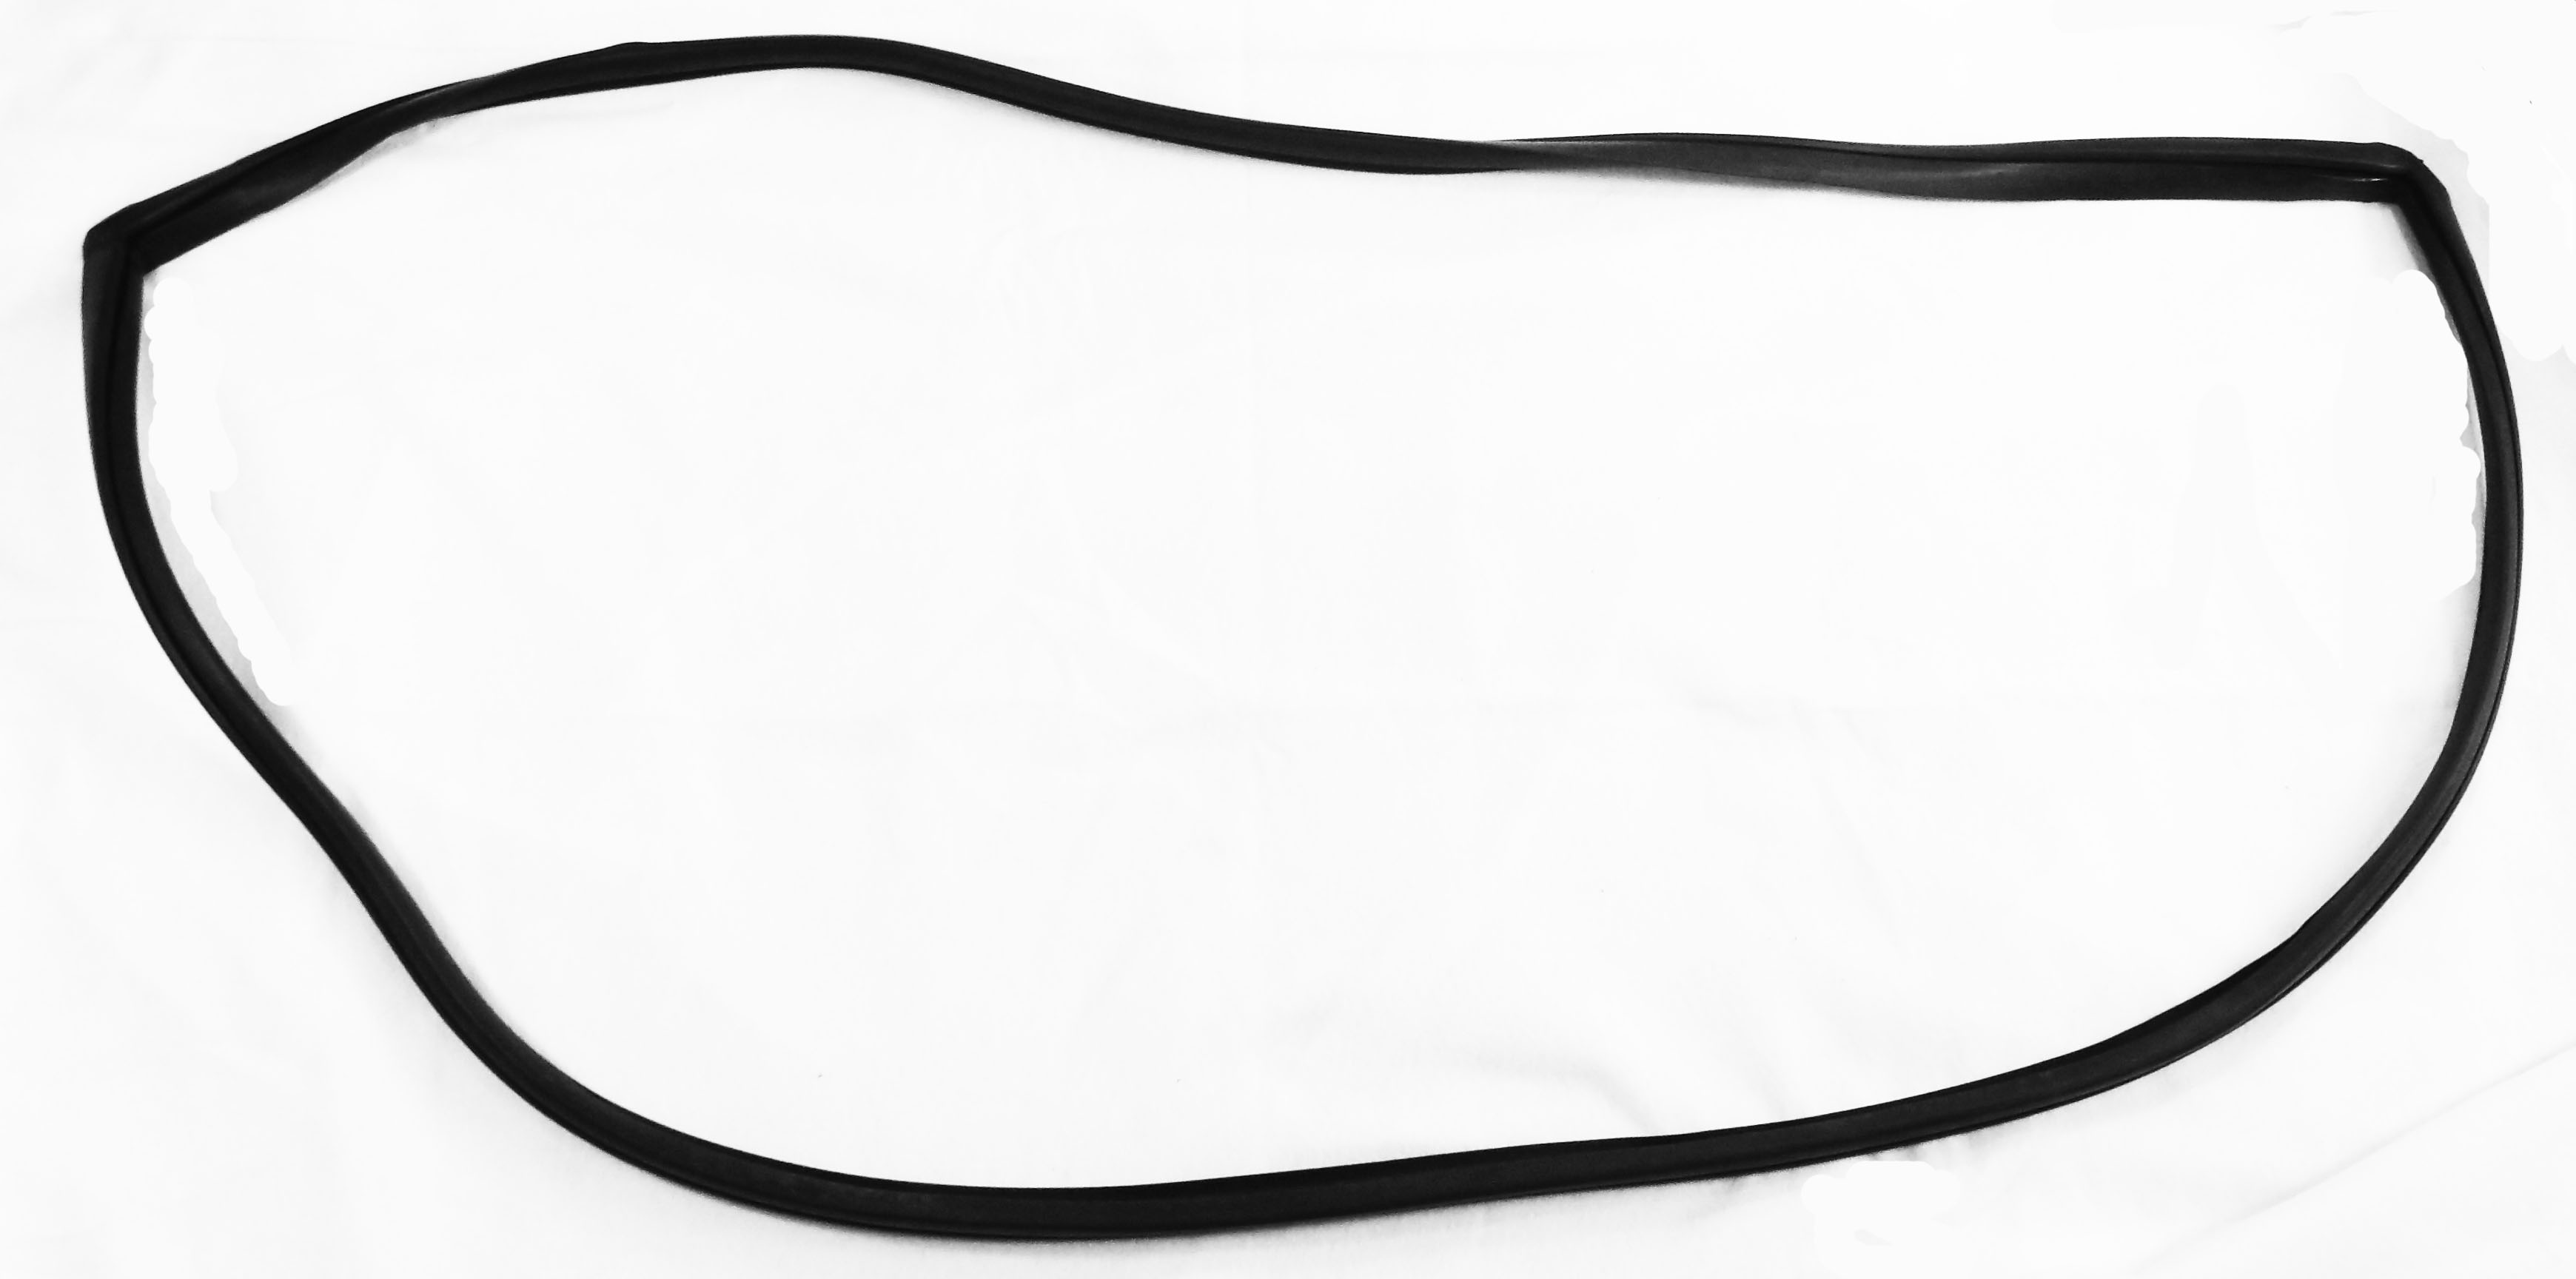 Rear Glass Channel For Chevrolet Impala 2 Door